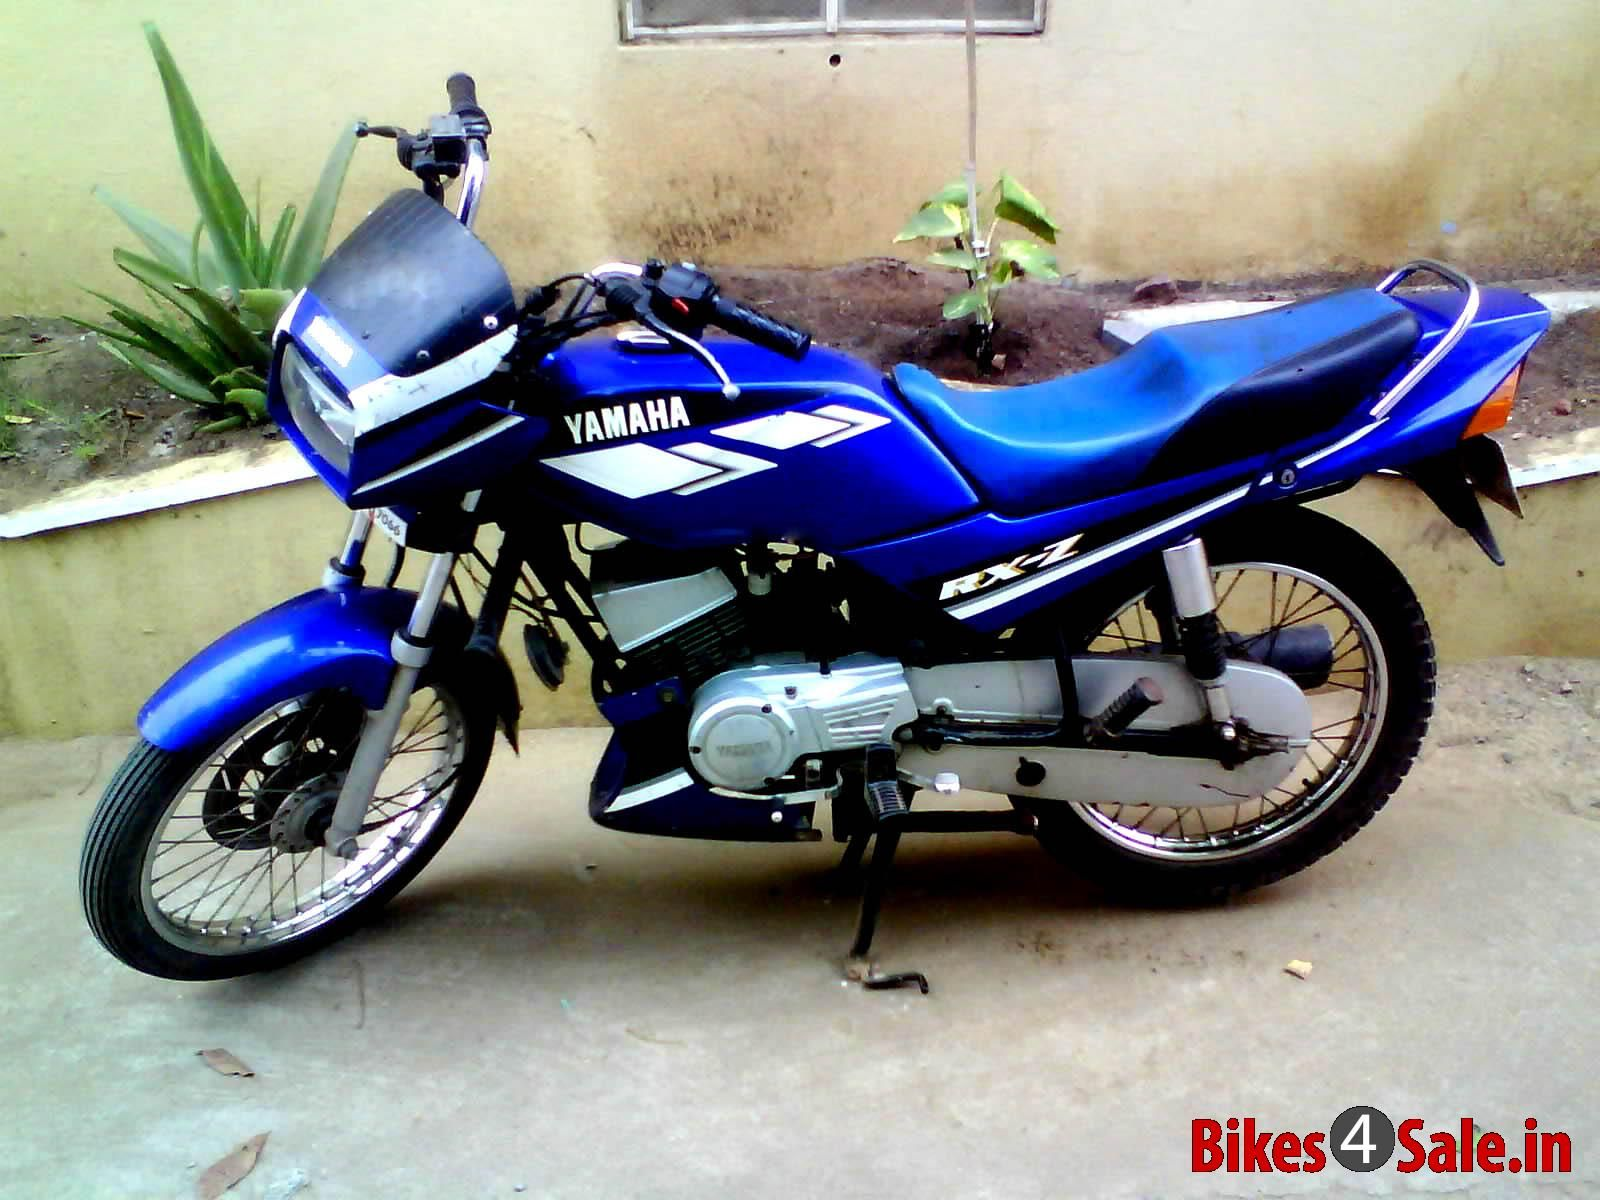 The Yamaha RXZ came into the market in the year 1987